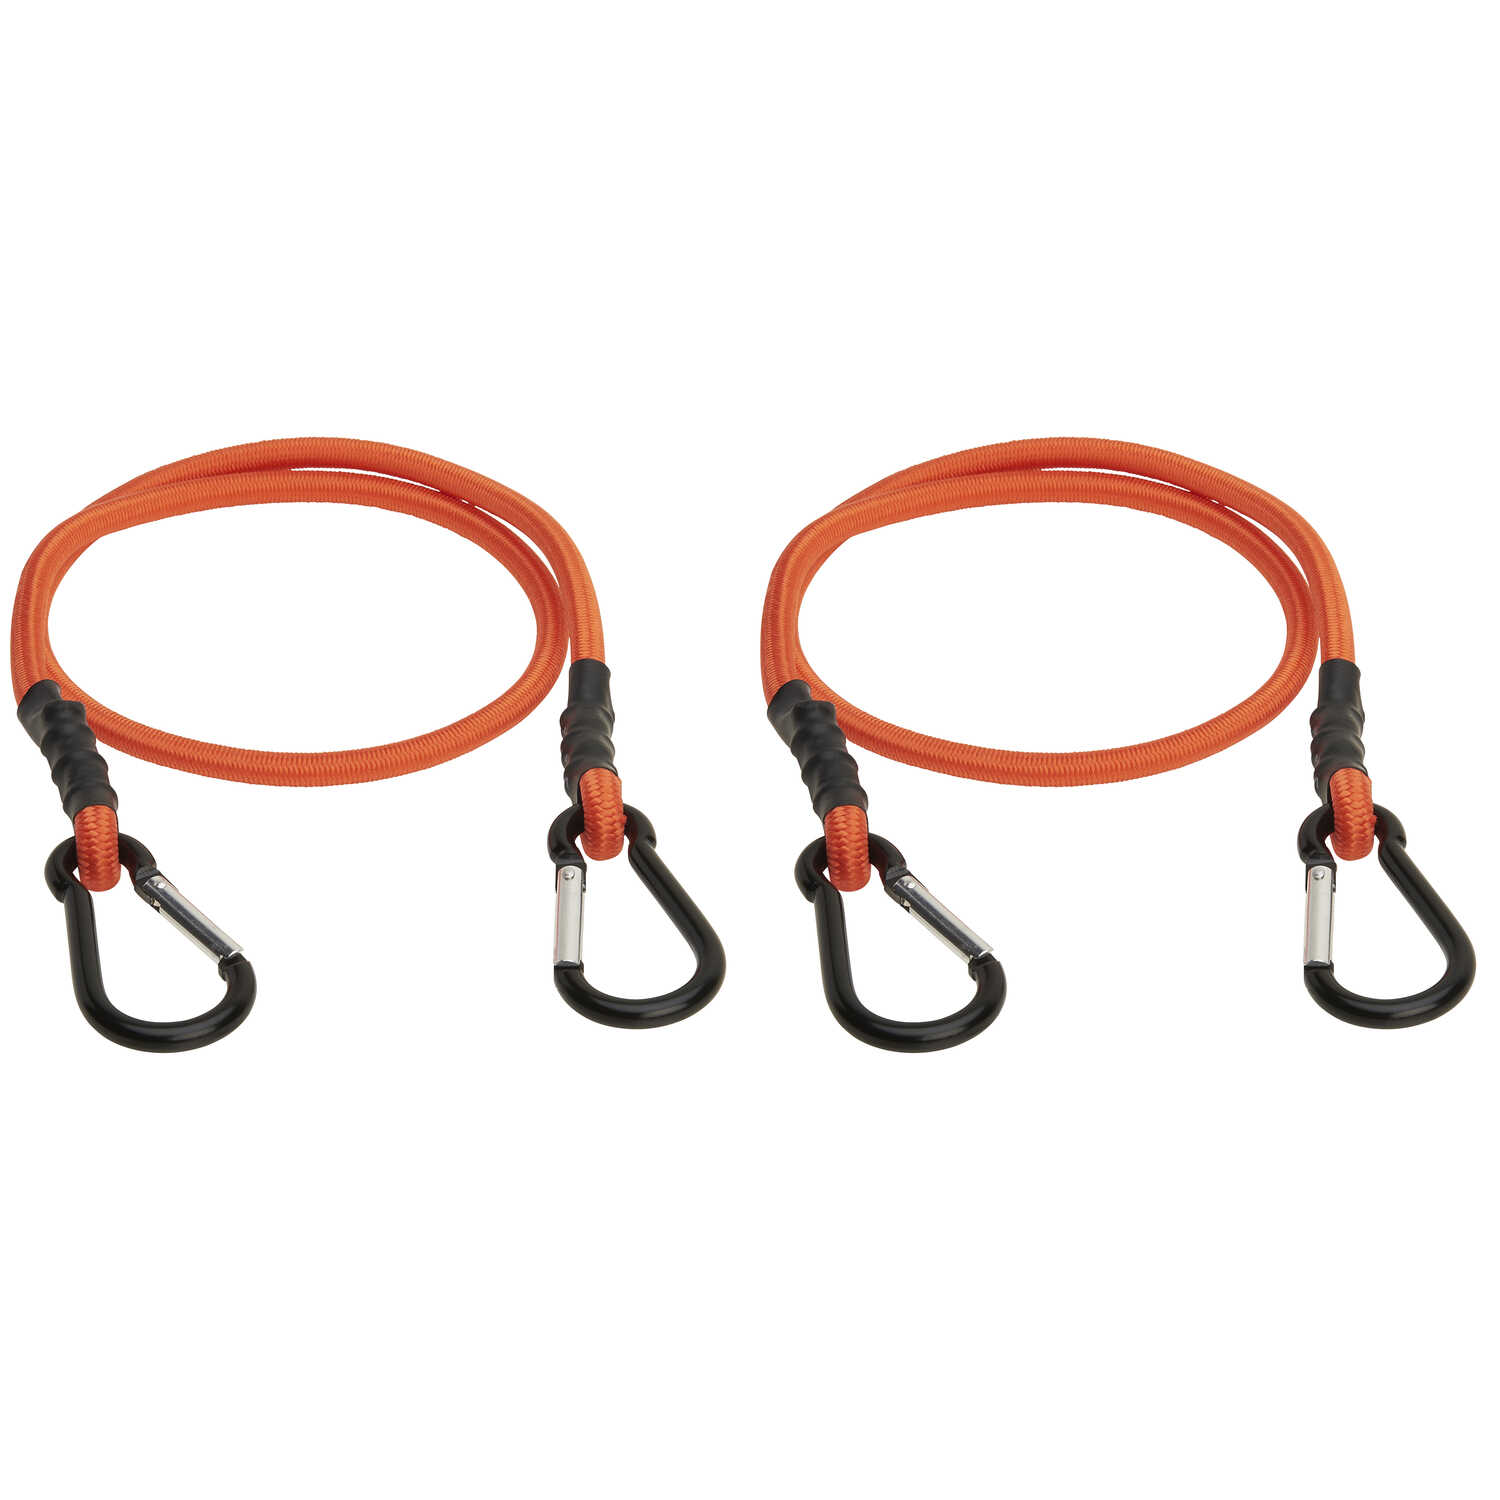 Keeper  Orange  Carabiner Style Bungee Cord  36 in. L x 0.315 in.  2 pk